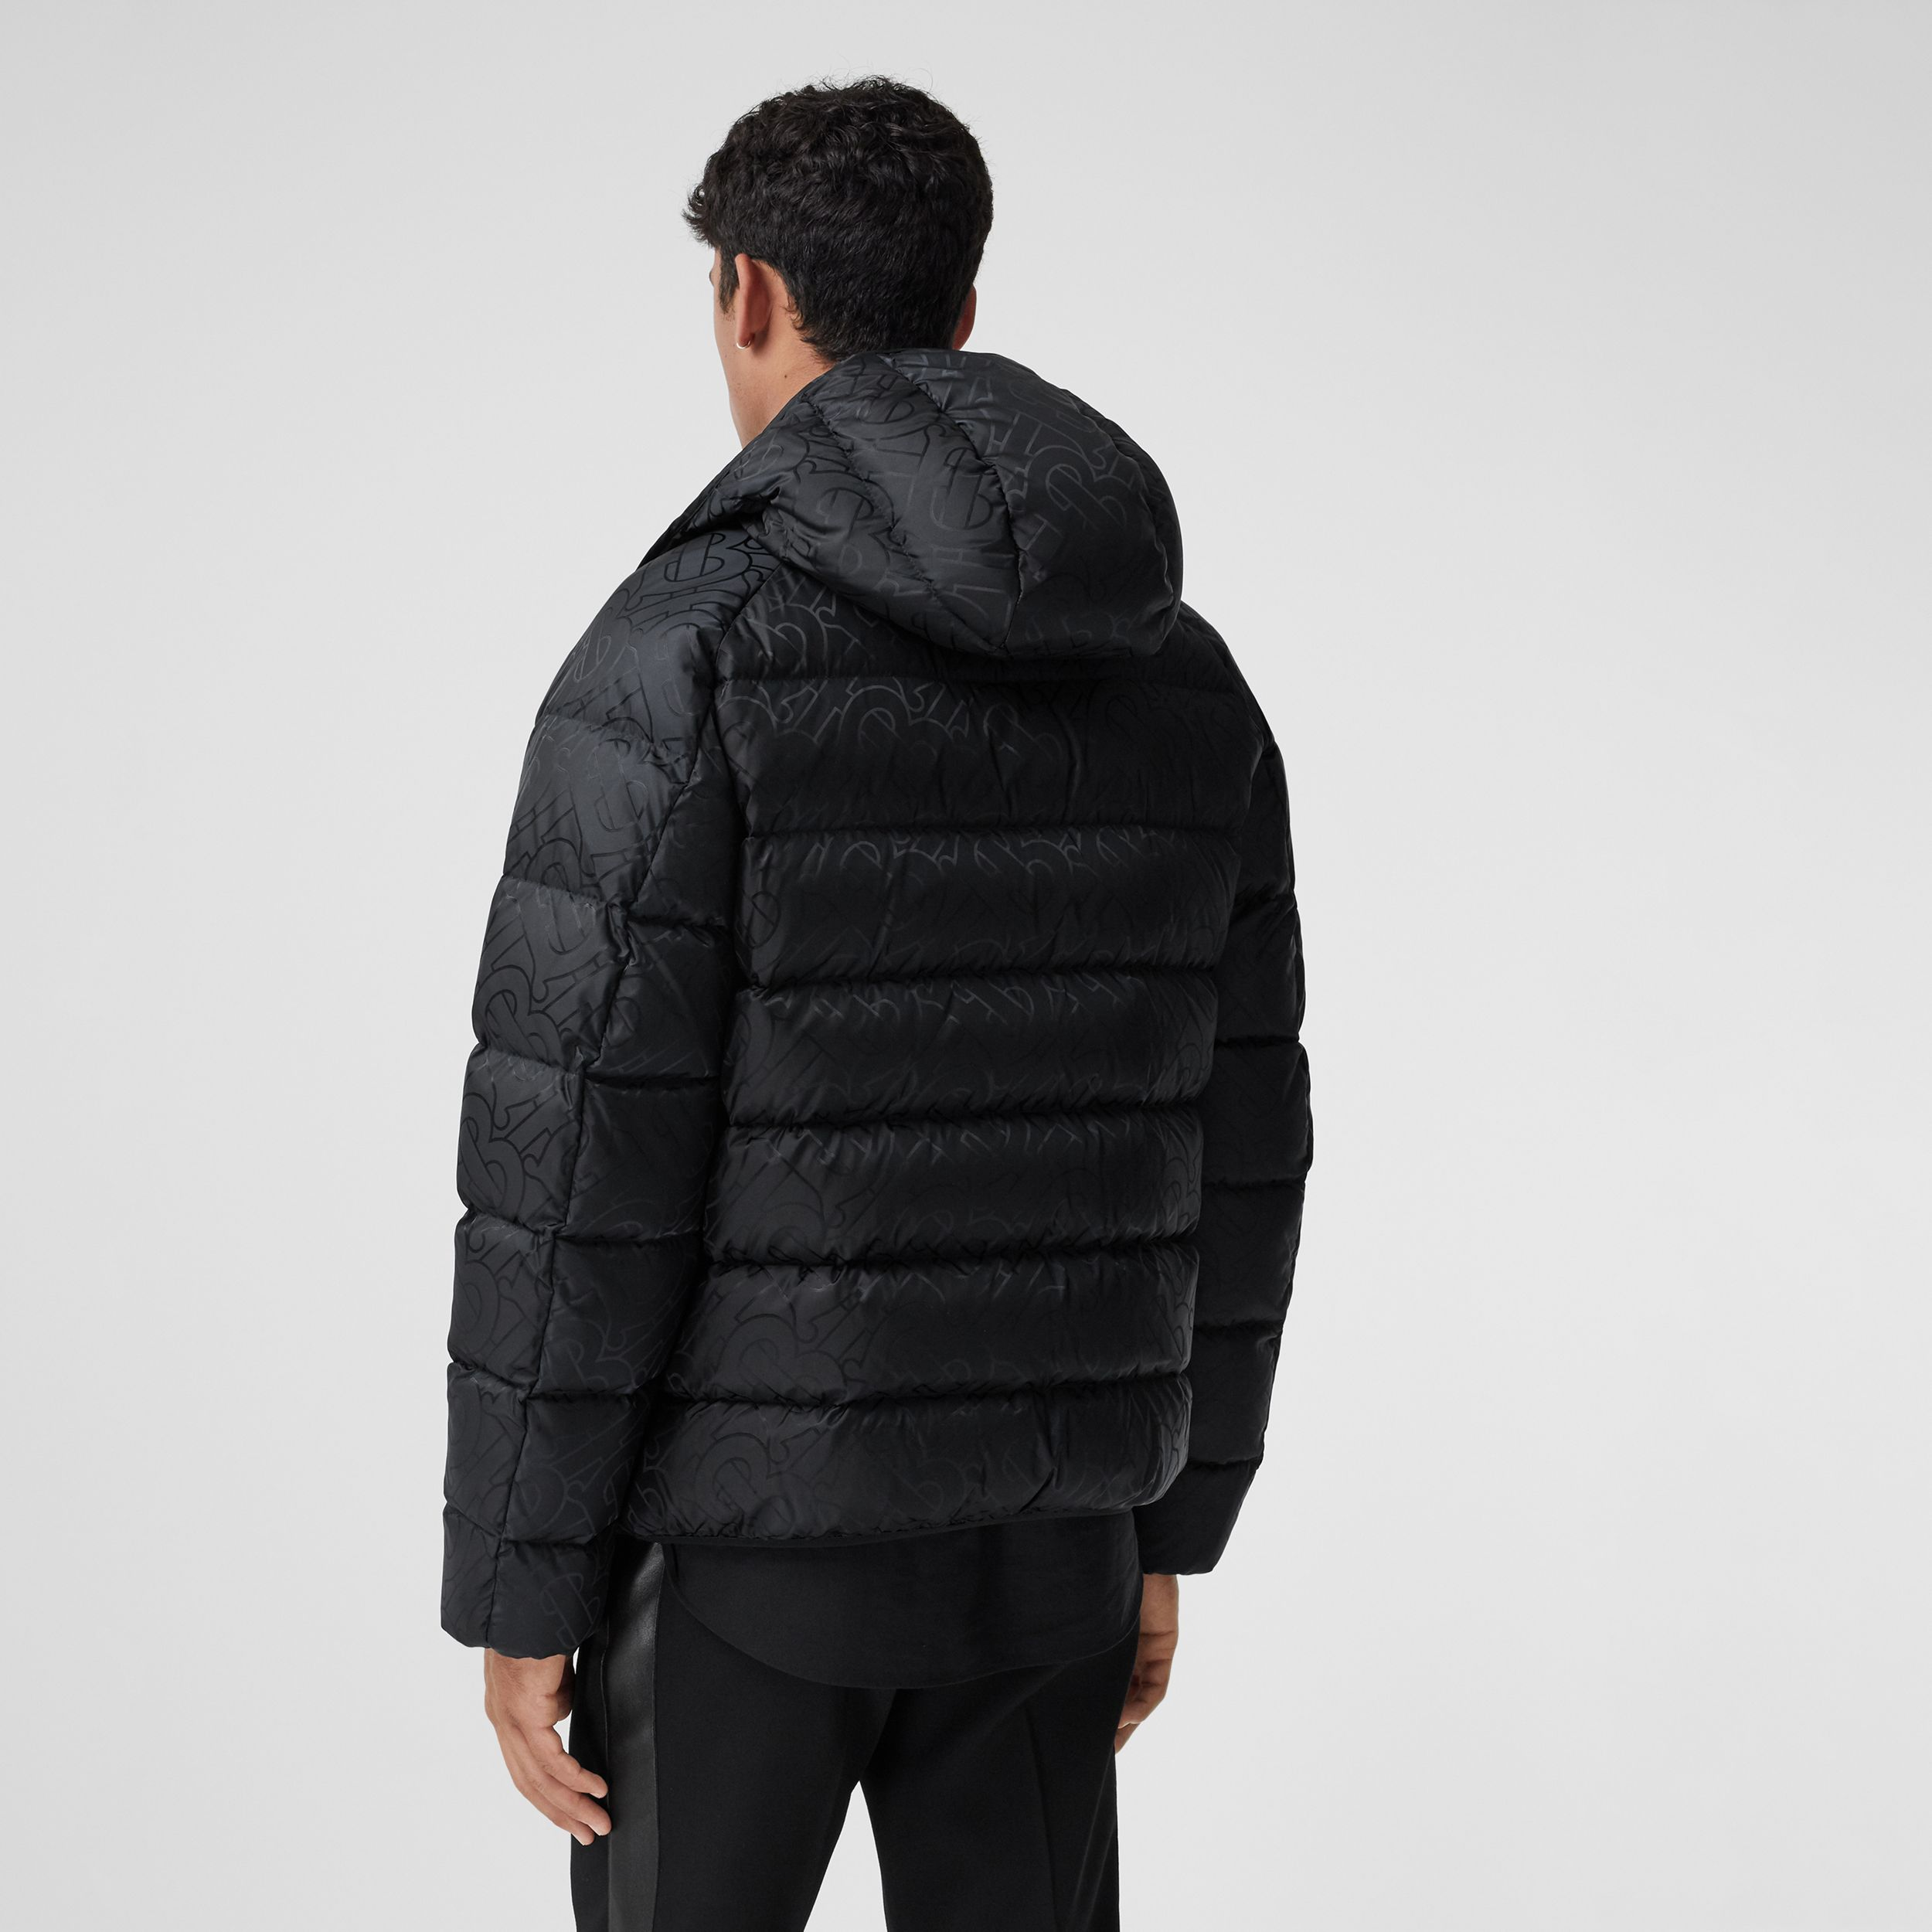 Monogram Jacquard Hooded Puffer Jacket in Black - Men | Burberry - 3